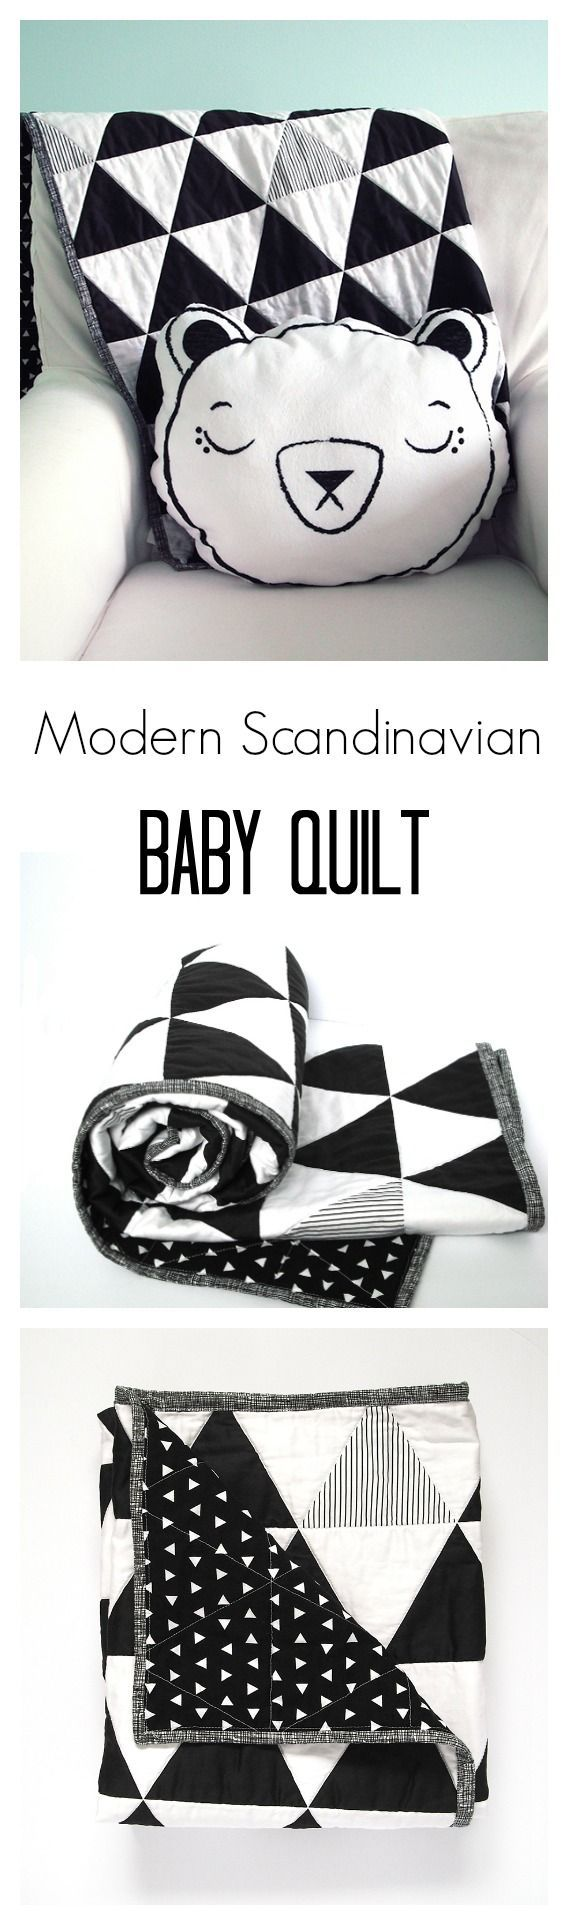 Modern Scandinavian inspired black and white baby quilt